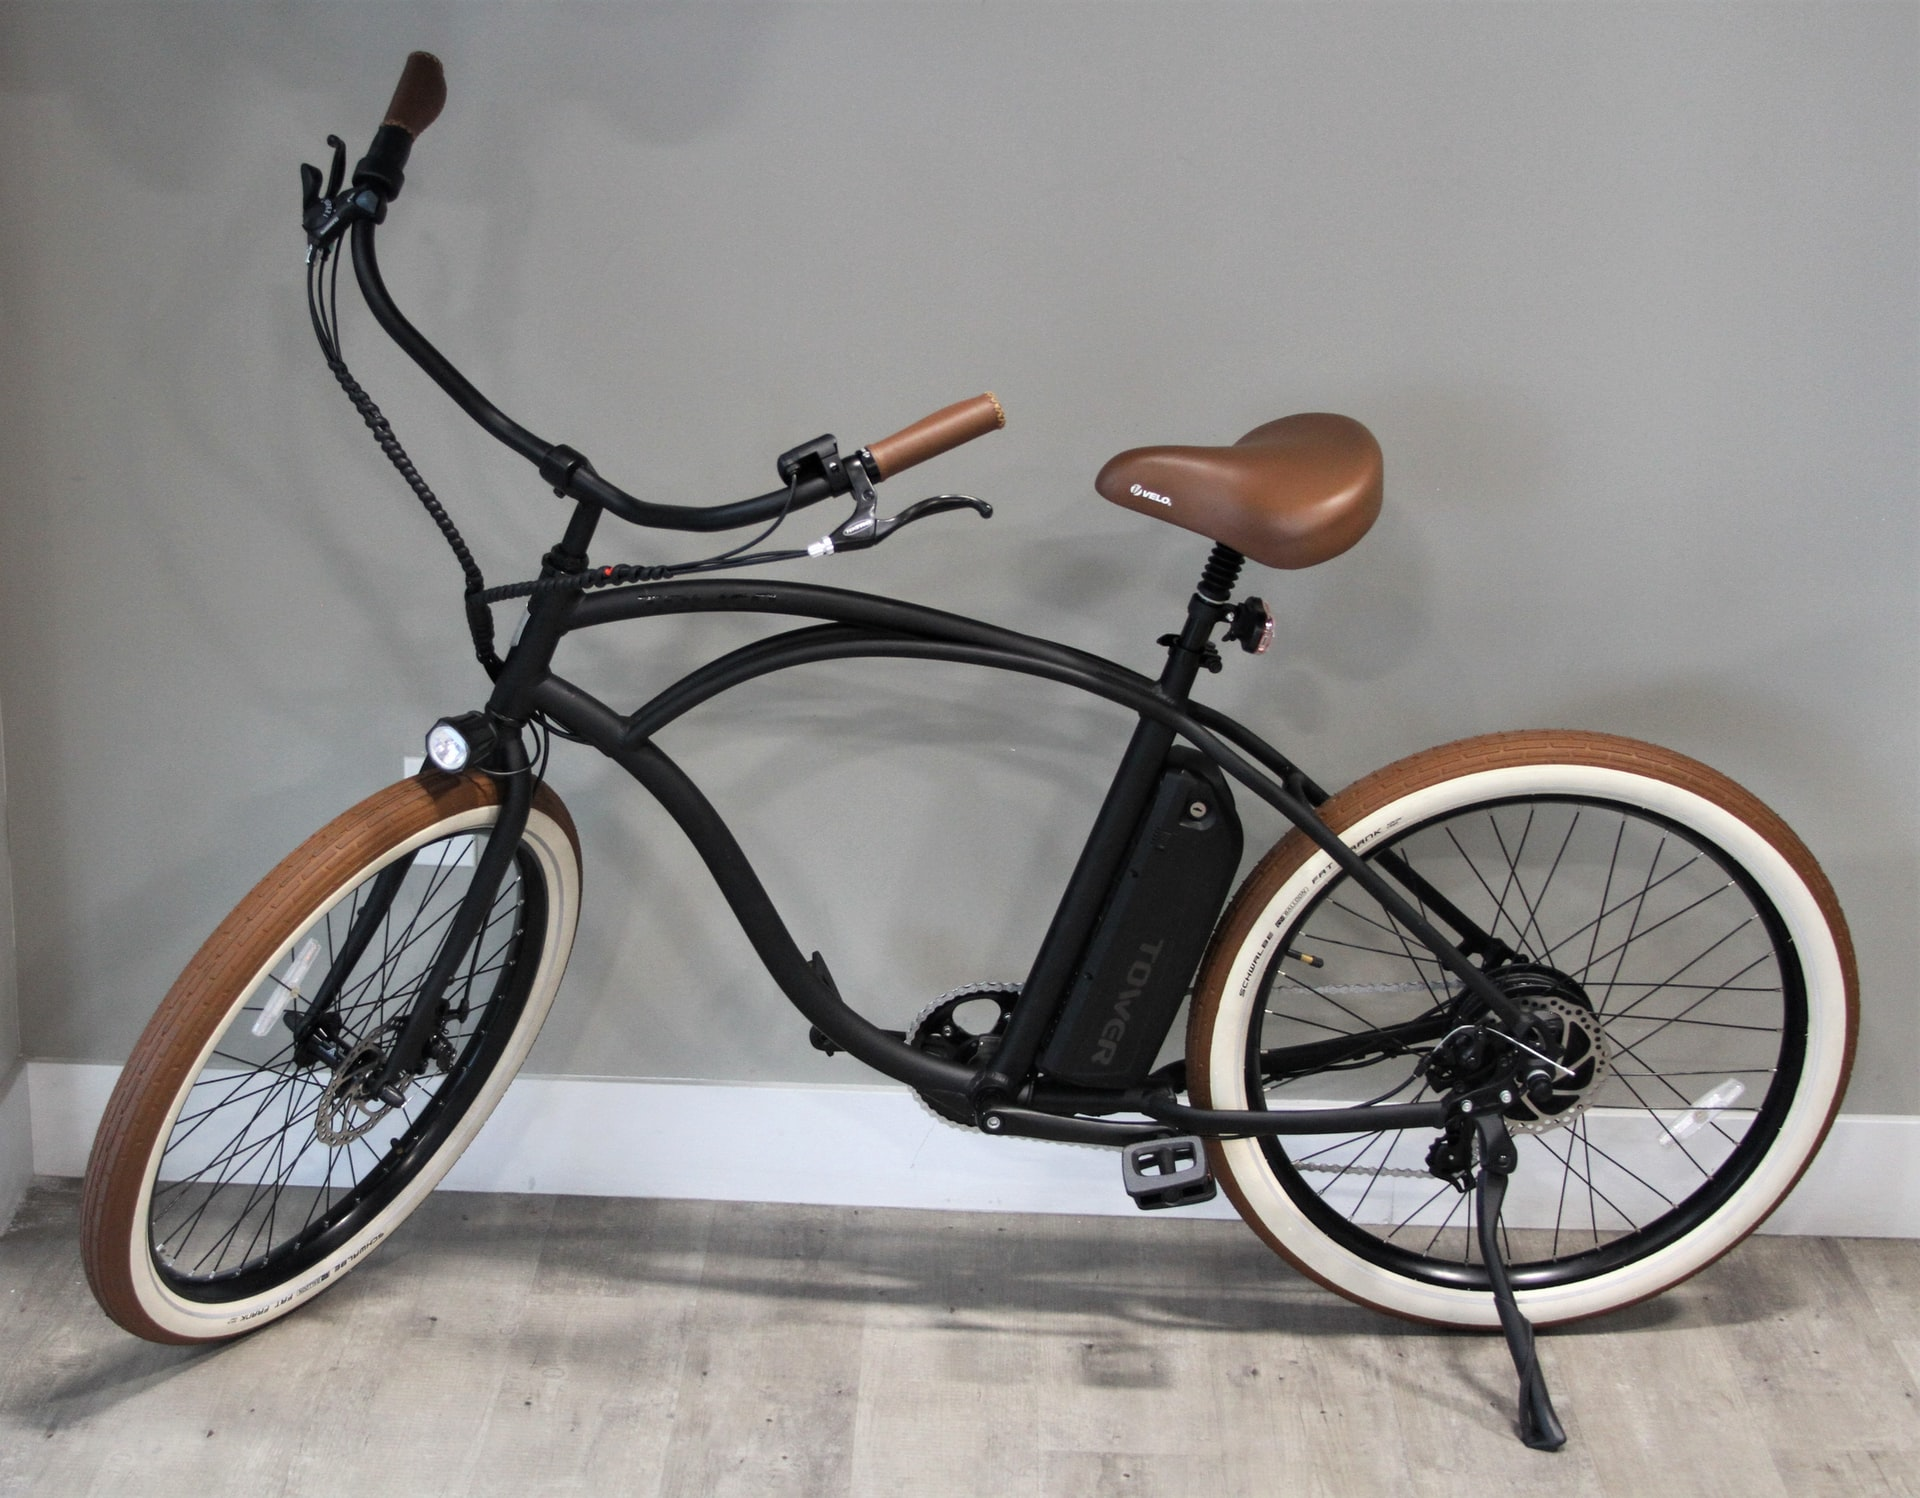 What to Know Before Buying an E-Bike